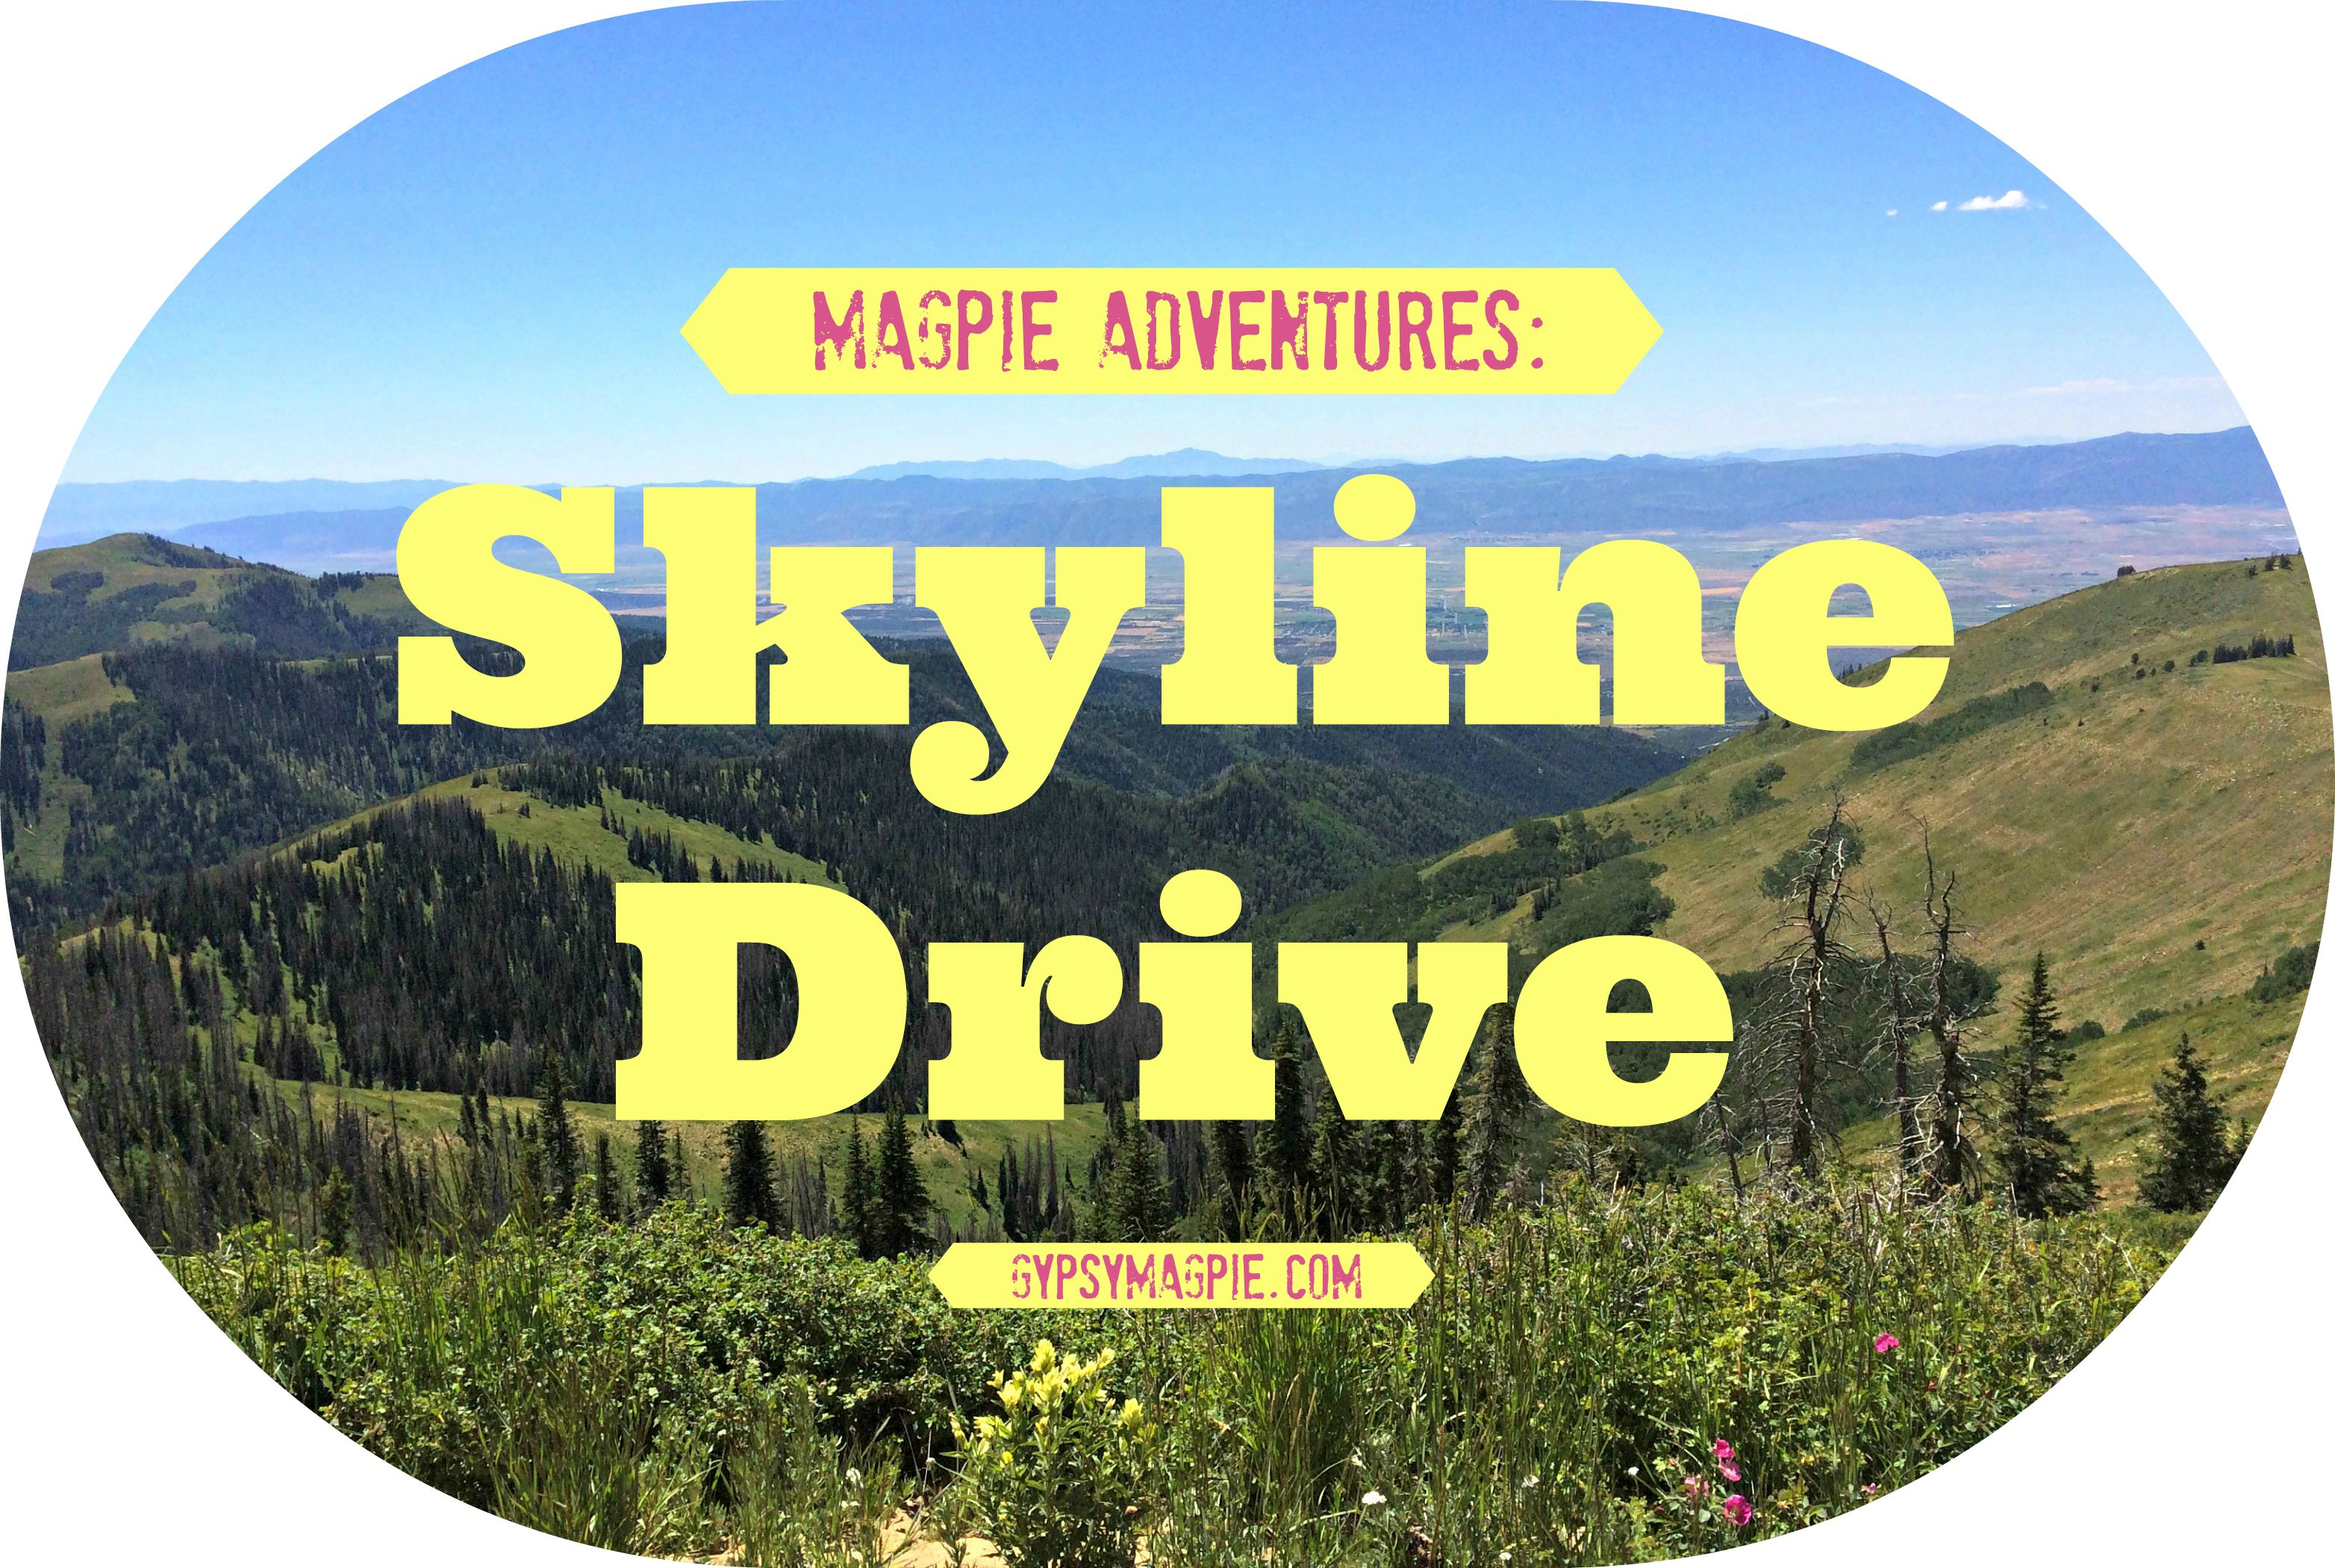 Looking for a fun Utah outdoor adventure for your family this fall? Skyline Drive and the Arapeen ATV Trail System are calling your name! {Gypsy Magpie}